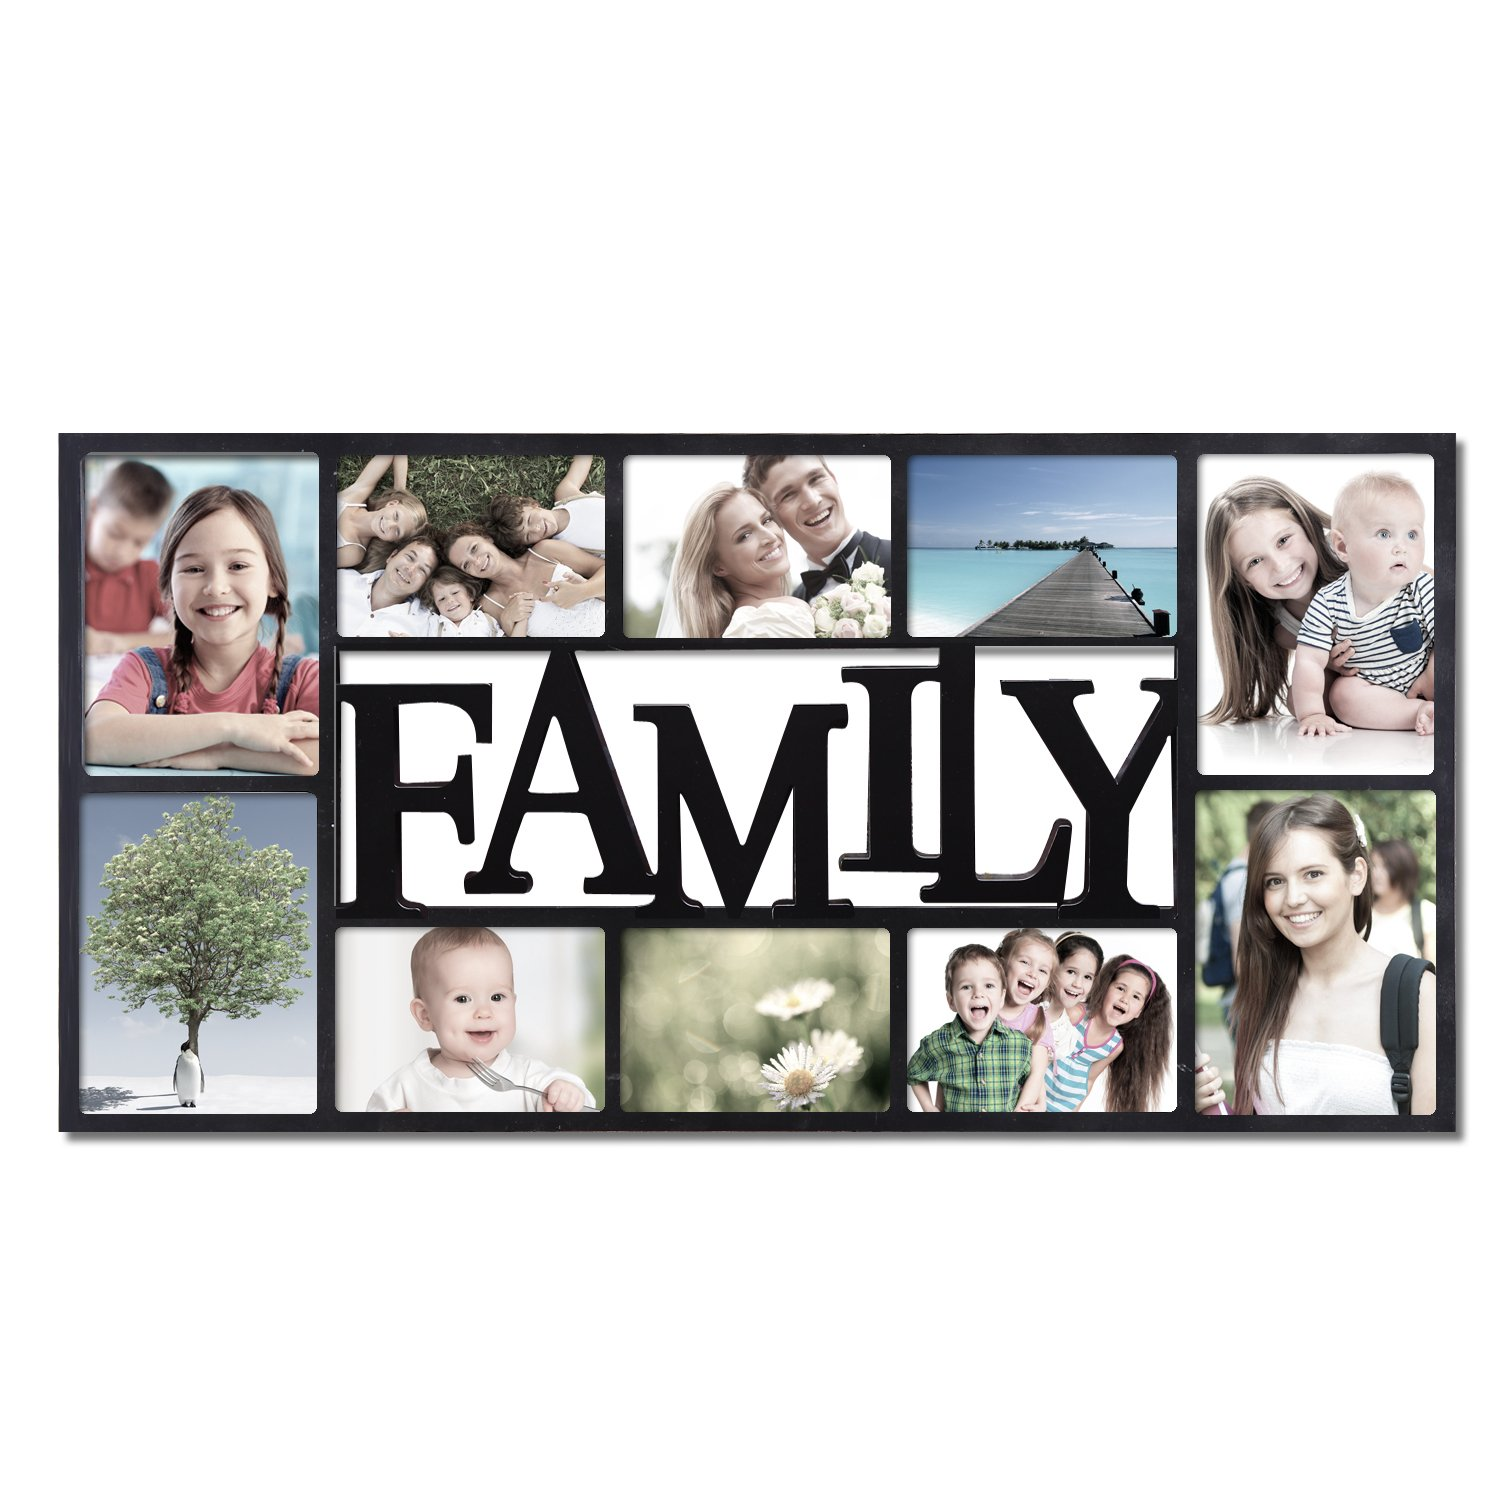 Amazon adeco 10 openings decroative black family wall amazon adeco 10 openings decroative black family wall hanging collage picture frame made to display four 5x7 and six 4x6 photos jeuxipadfo Gallery